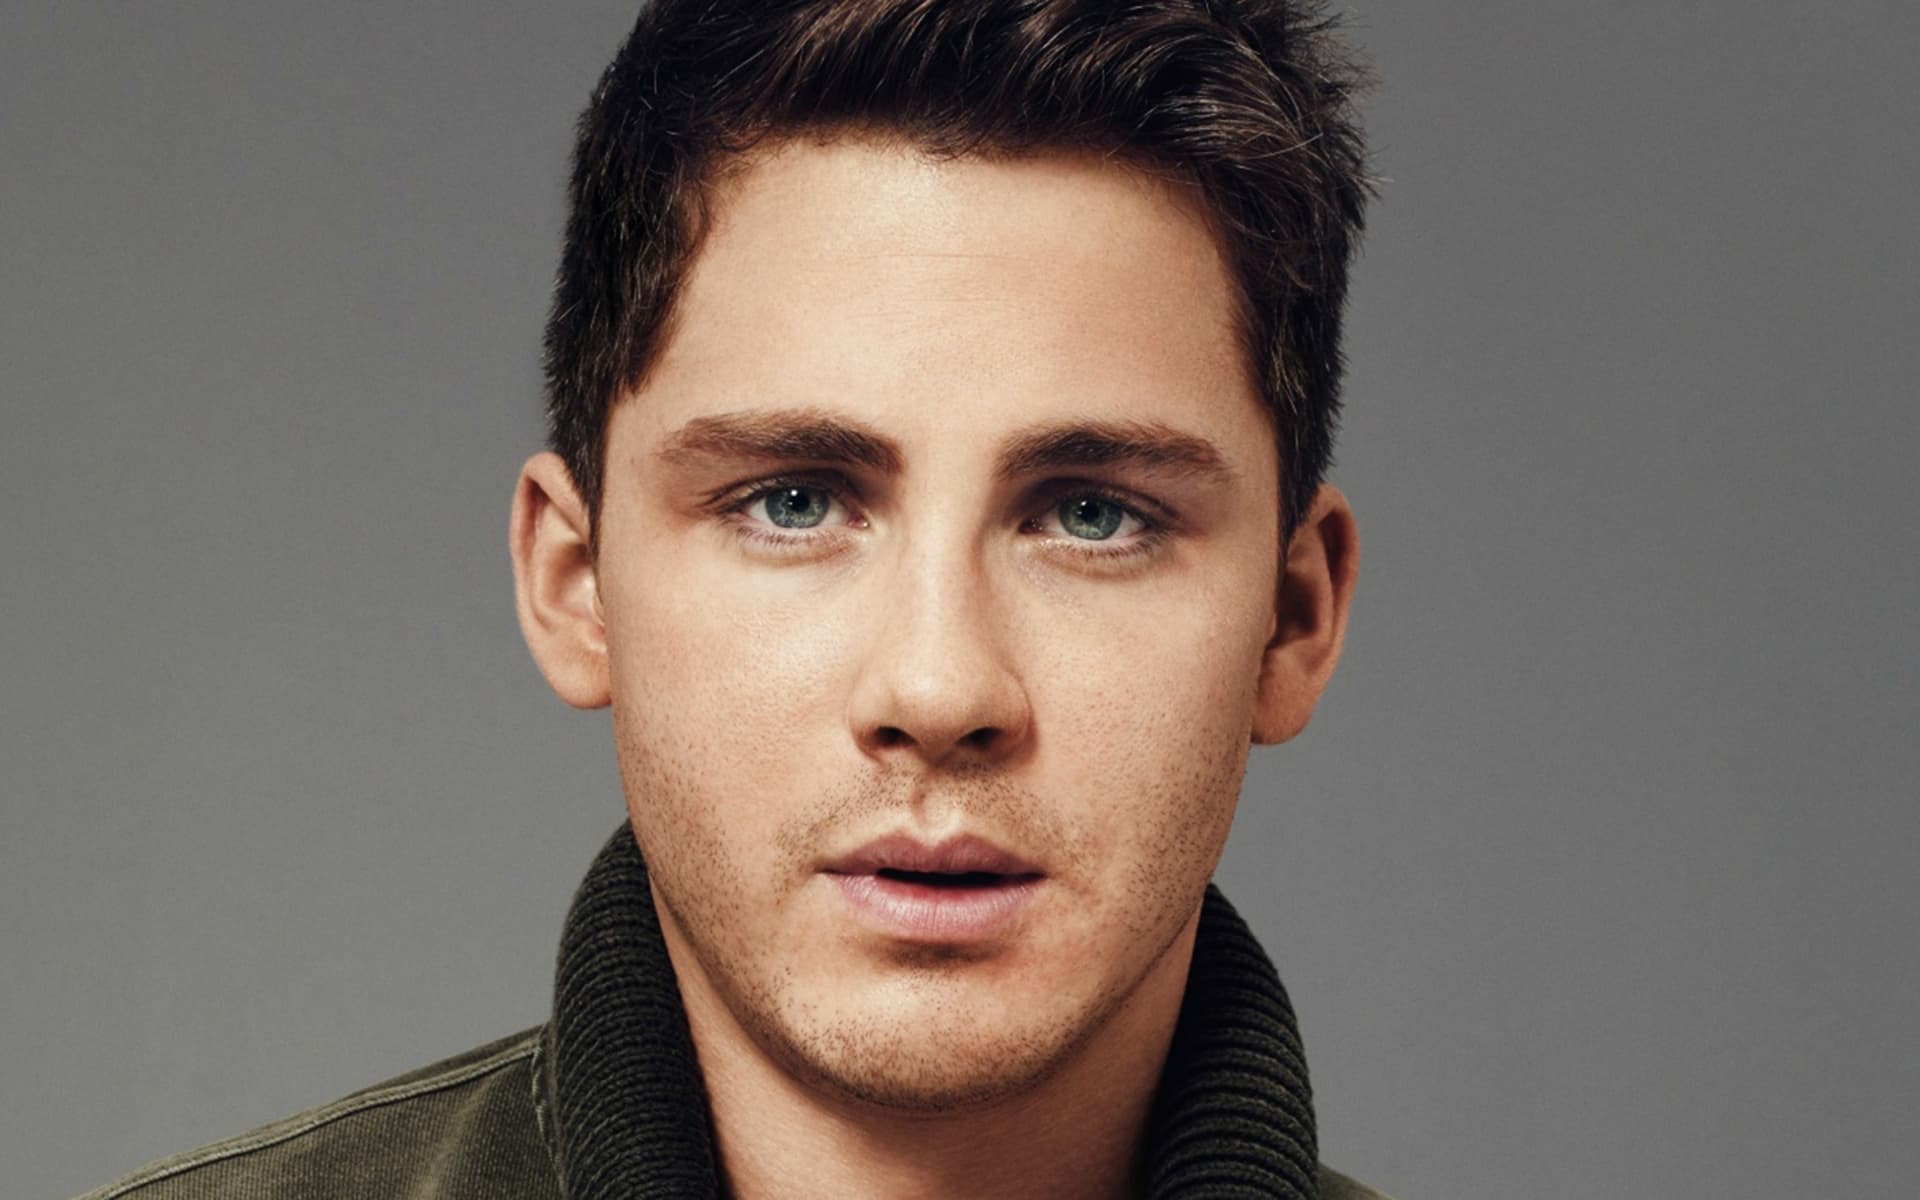 Sport Car Wallpaper Hd 15 Logan Lerman Wallpapers High Quality Resolution Download